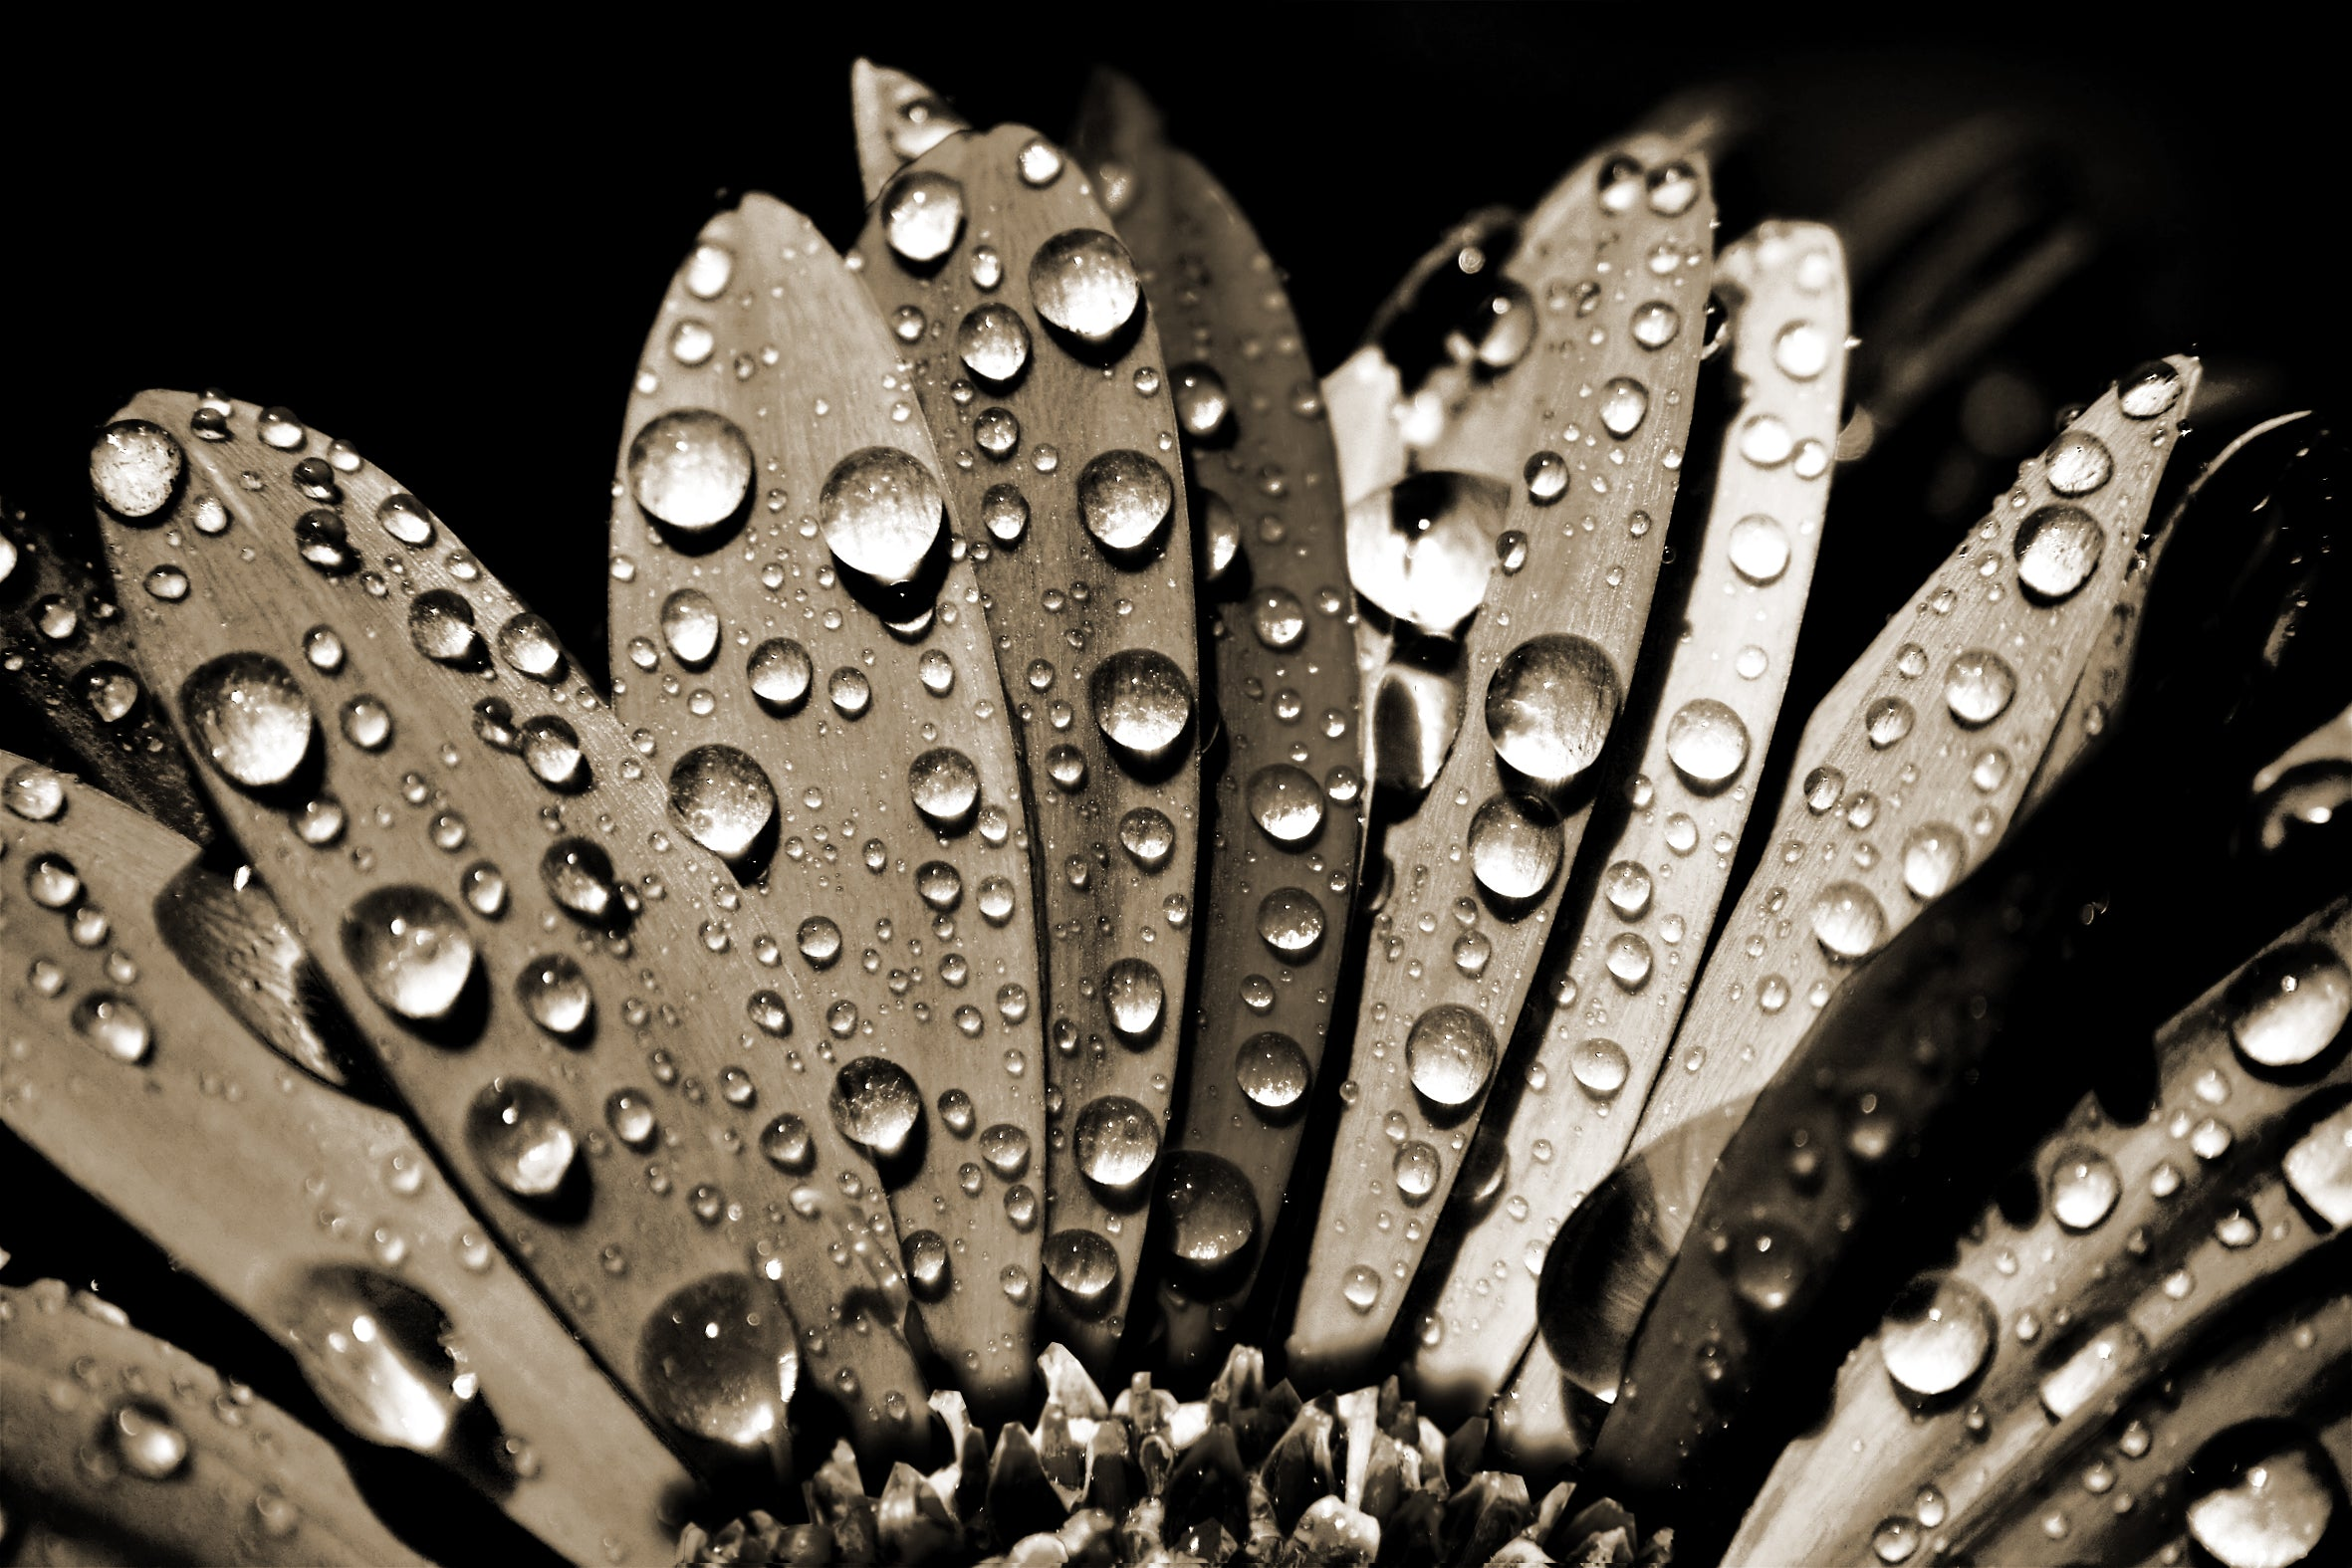 Close-up photo of flower petals with water droplets in sepia